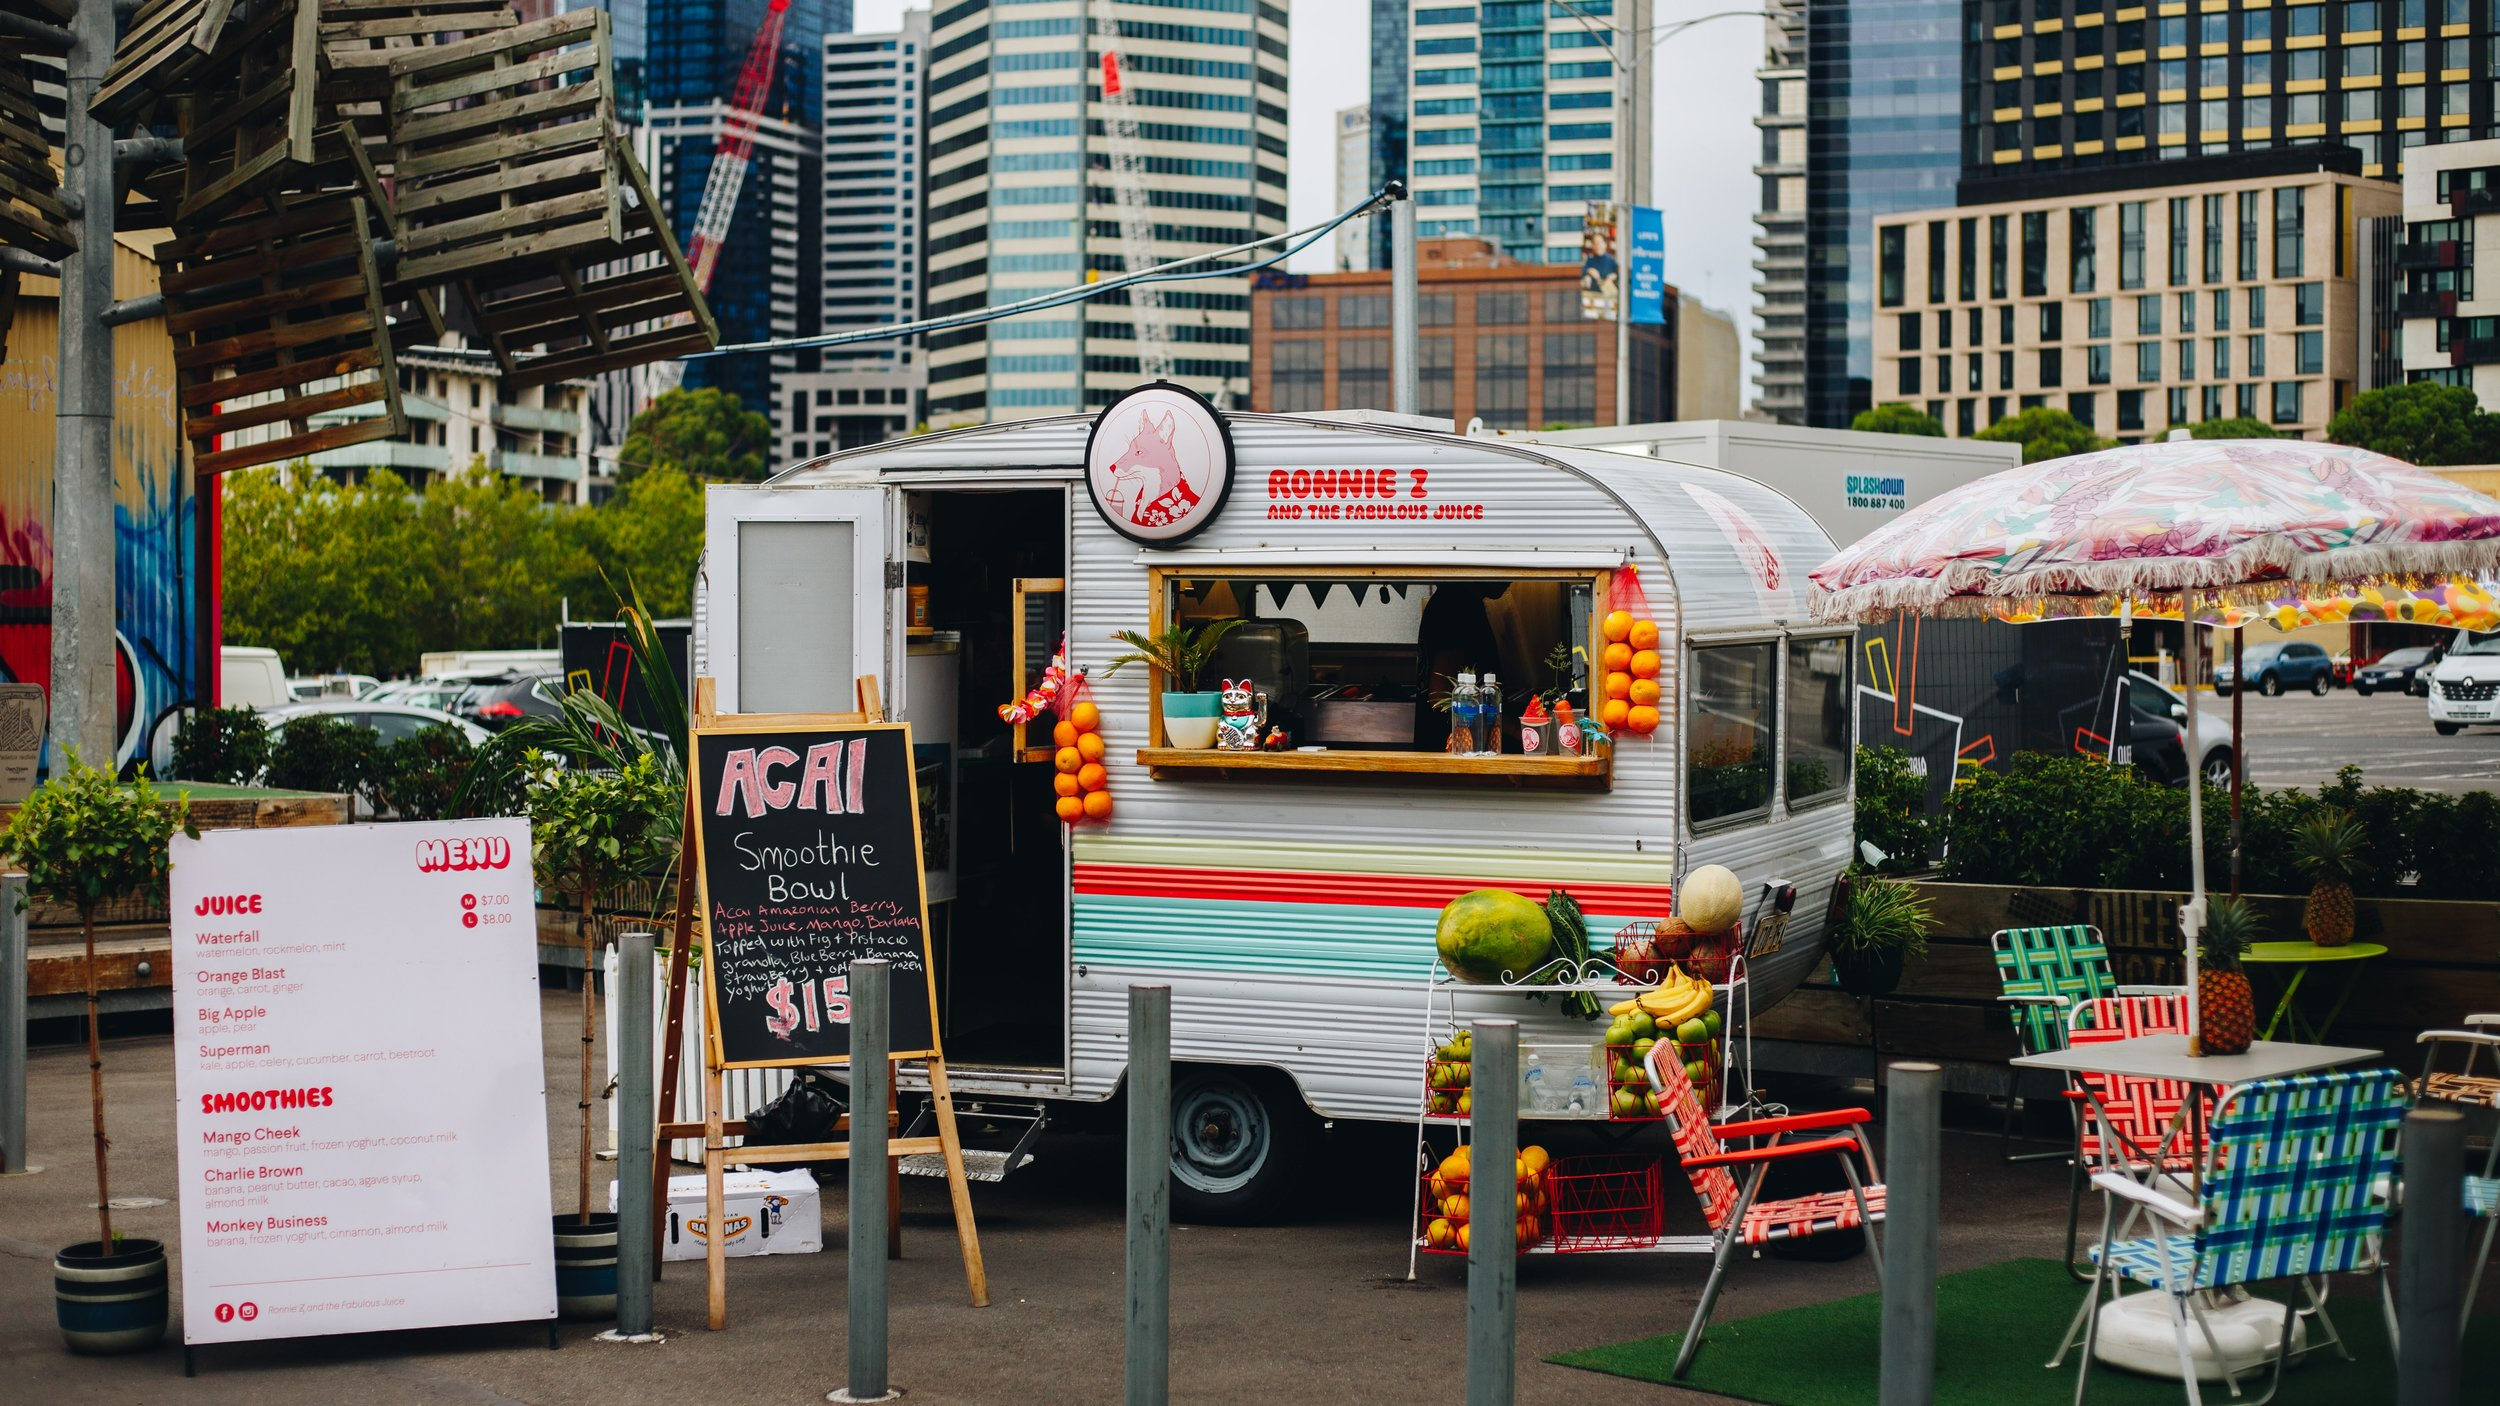 Food truck parks provide small-scale entrepreneurs with a lower barrier to entry to the market and enhance the community's quality of life by providing greater variety. Source:   Isaac Benhesed